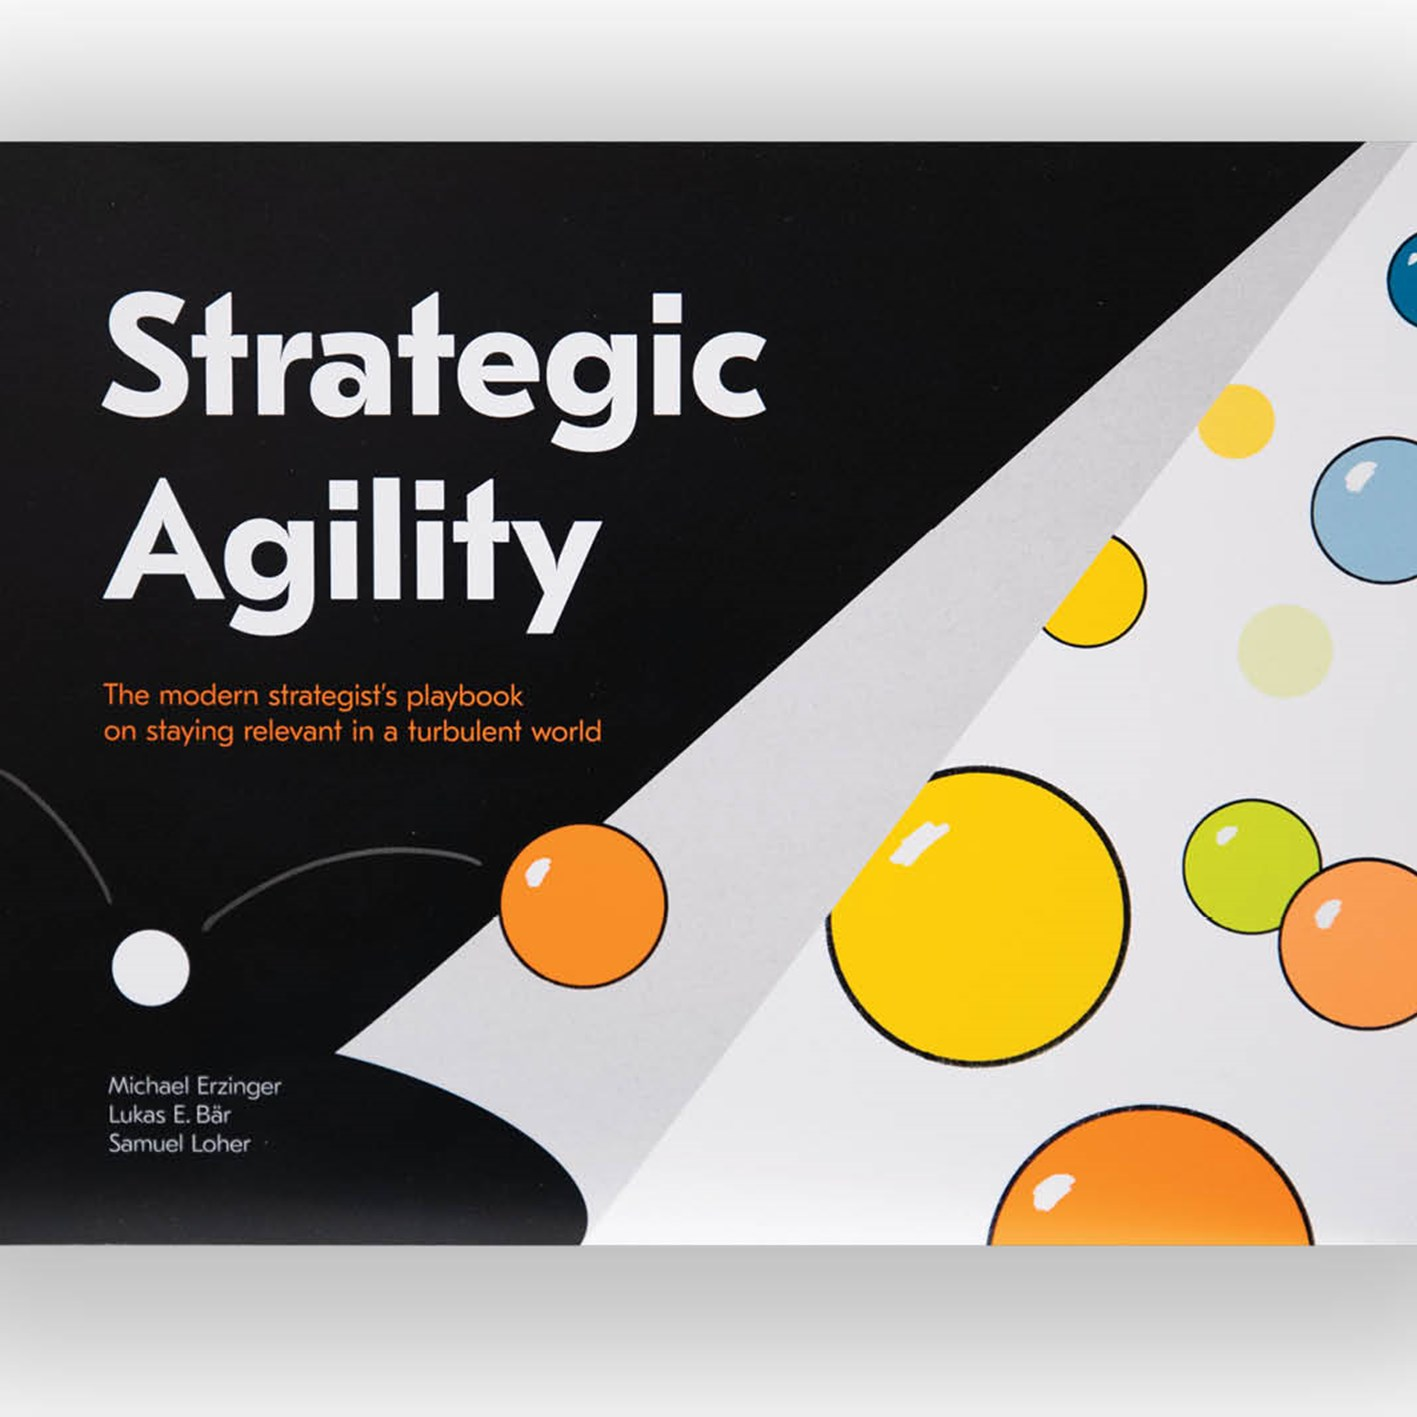 Strategic agility is the modern strategist's handbook on staying relevant in a turbulent world.